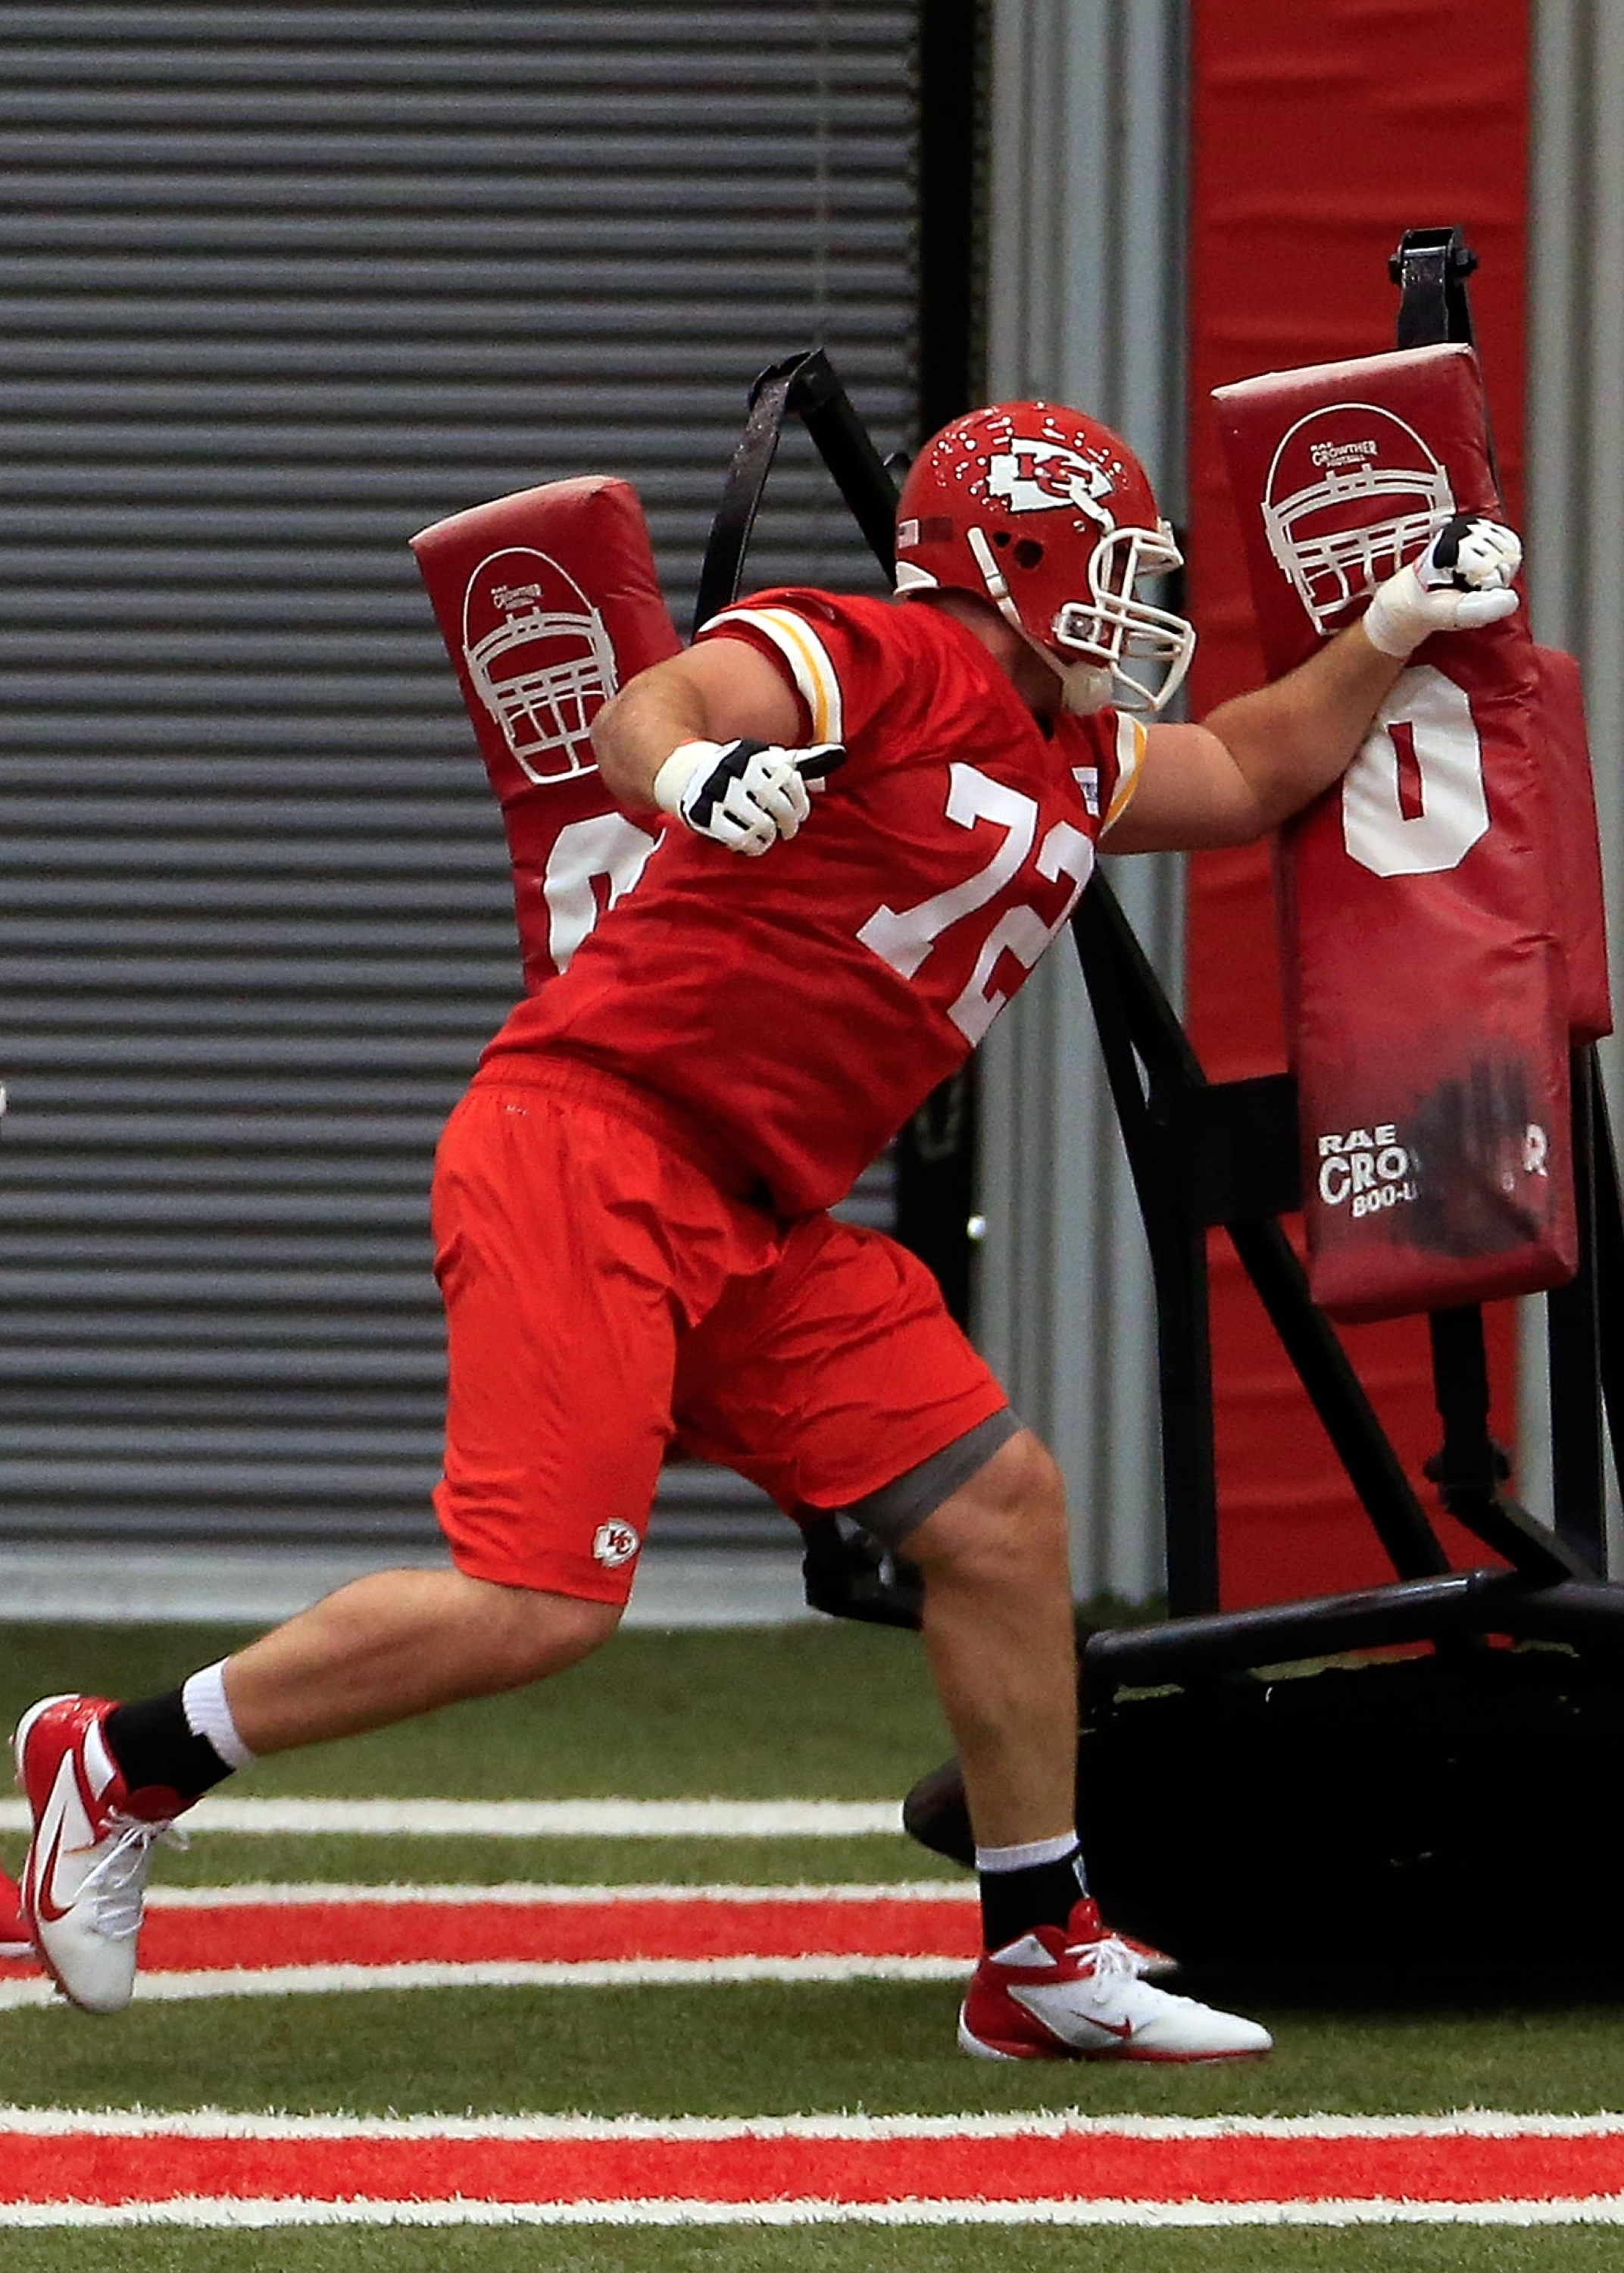 Eric Fisher hits a tackling dummy while practicing at Chiefs rookie camp. (Getty)